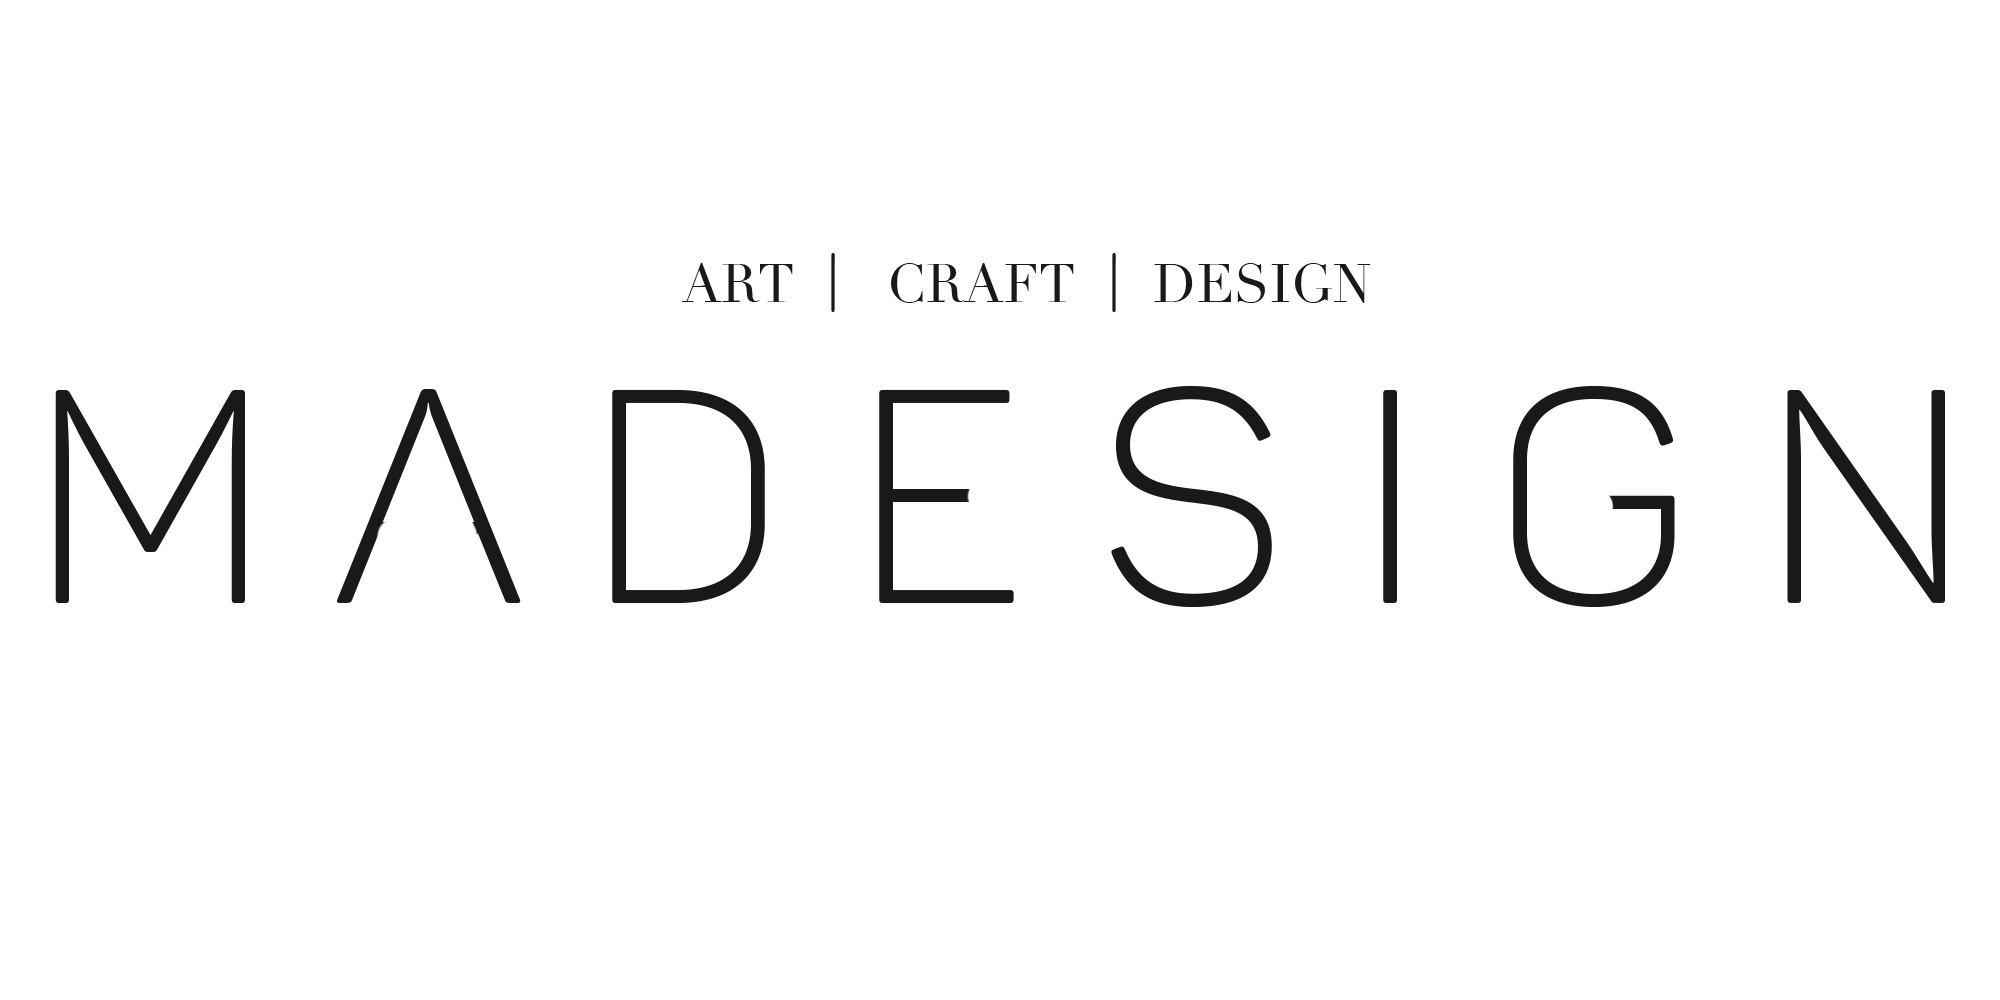 Madesign full logo